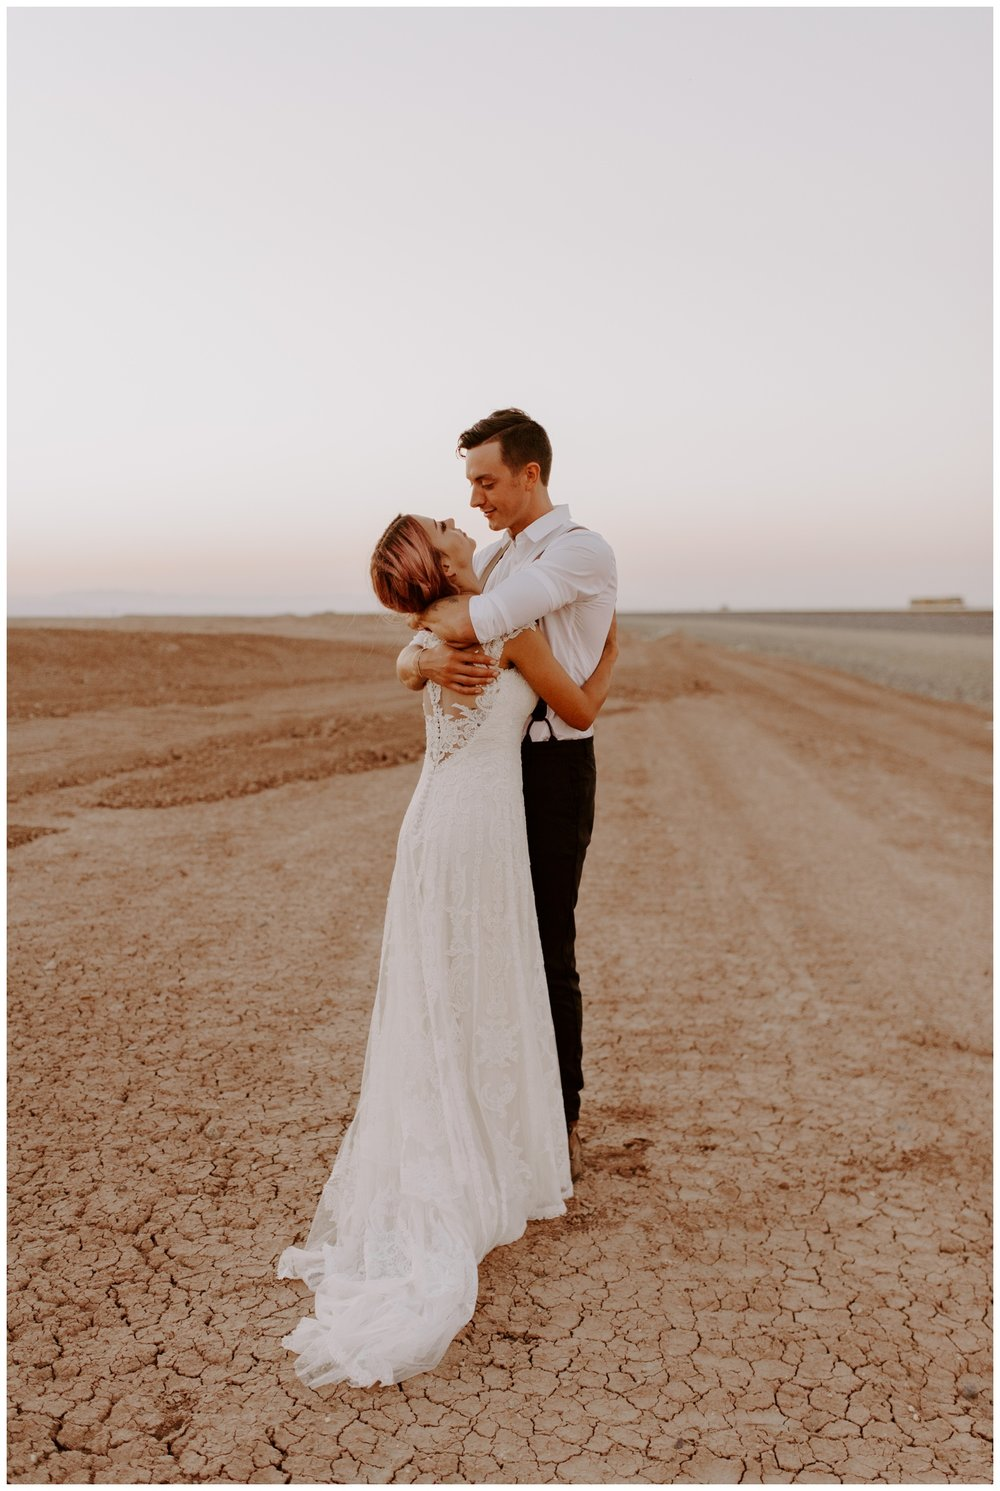 Kira and Brayden Elopement Highlights - Jessica Heron Images 038.jpg